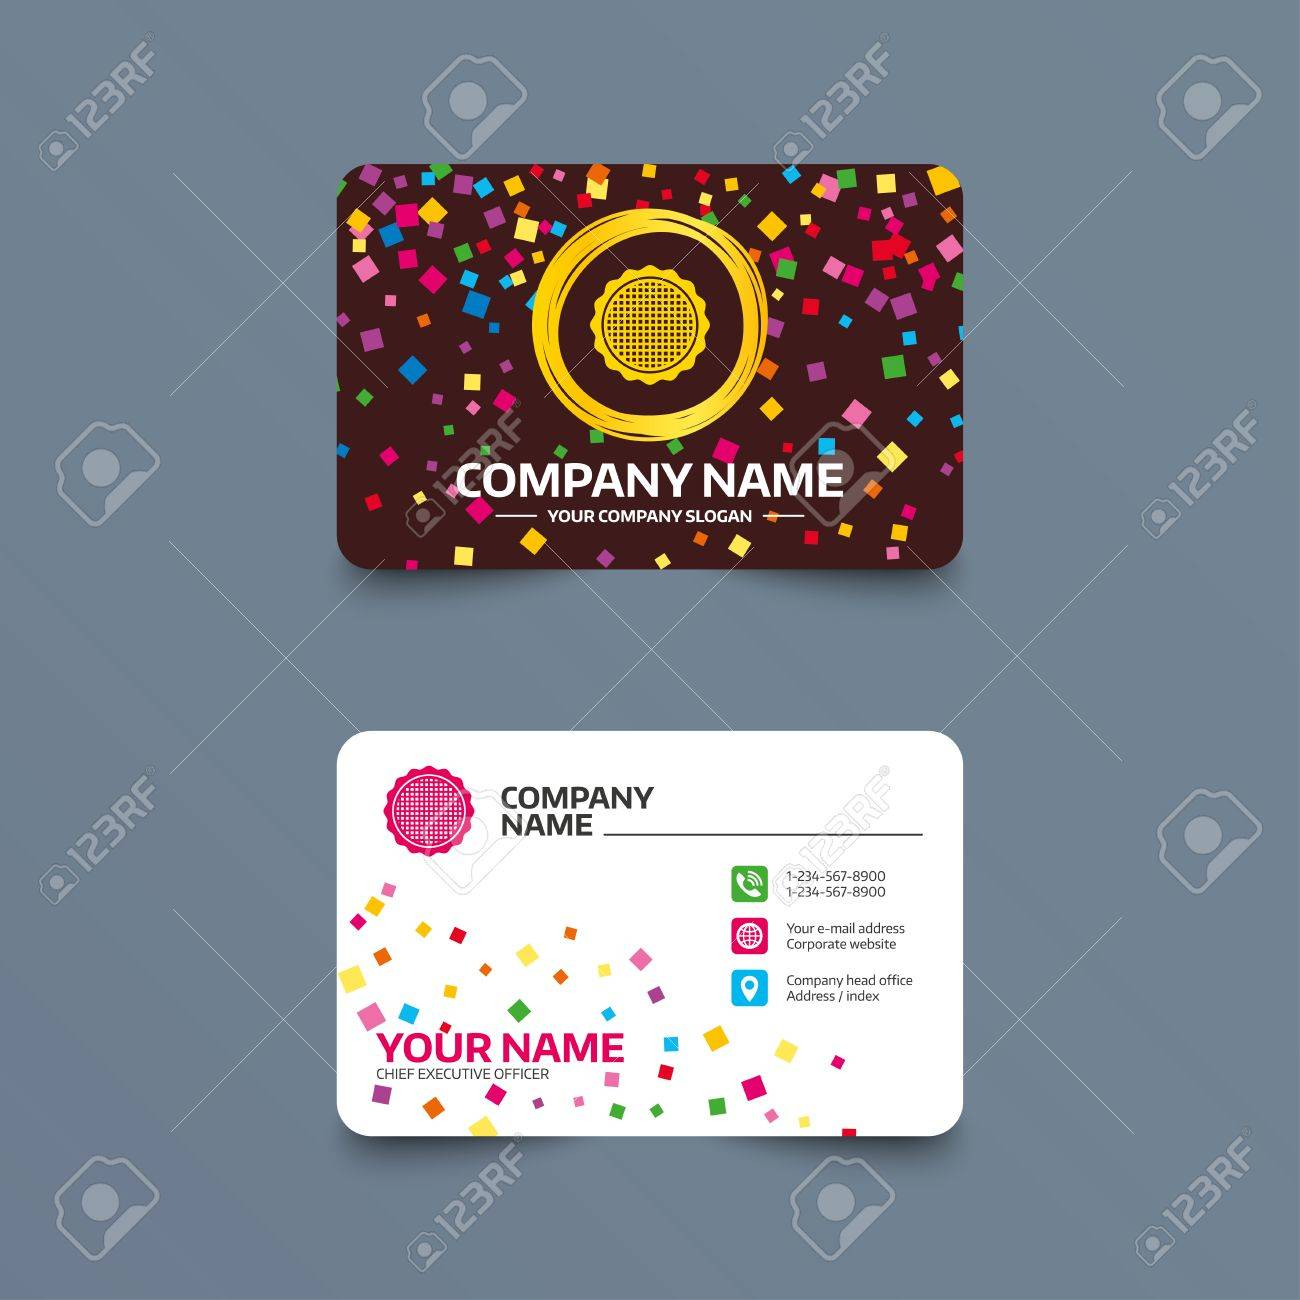 Business Card Template With Confetti Pieces Canvas For Embroidery